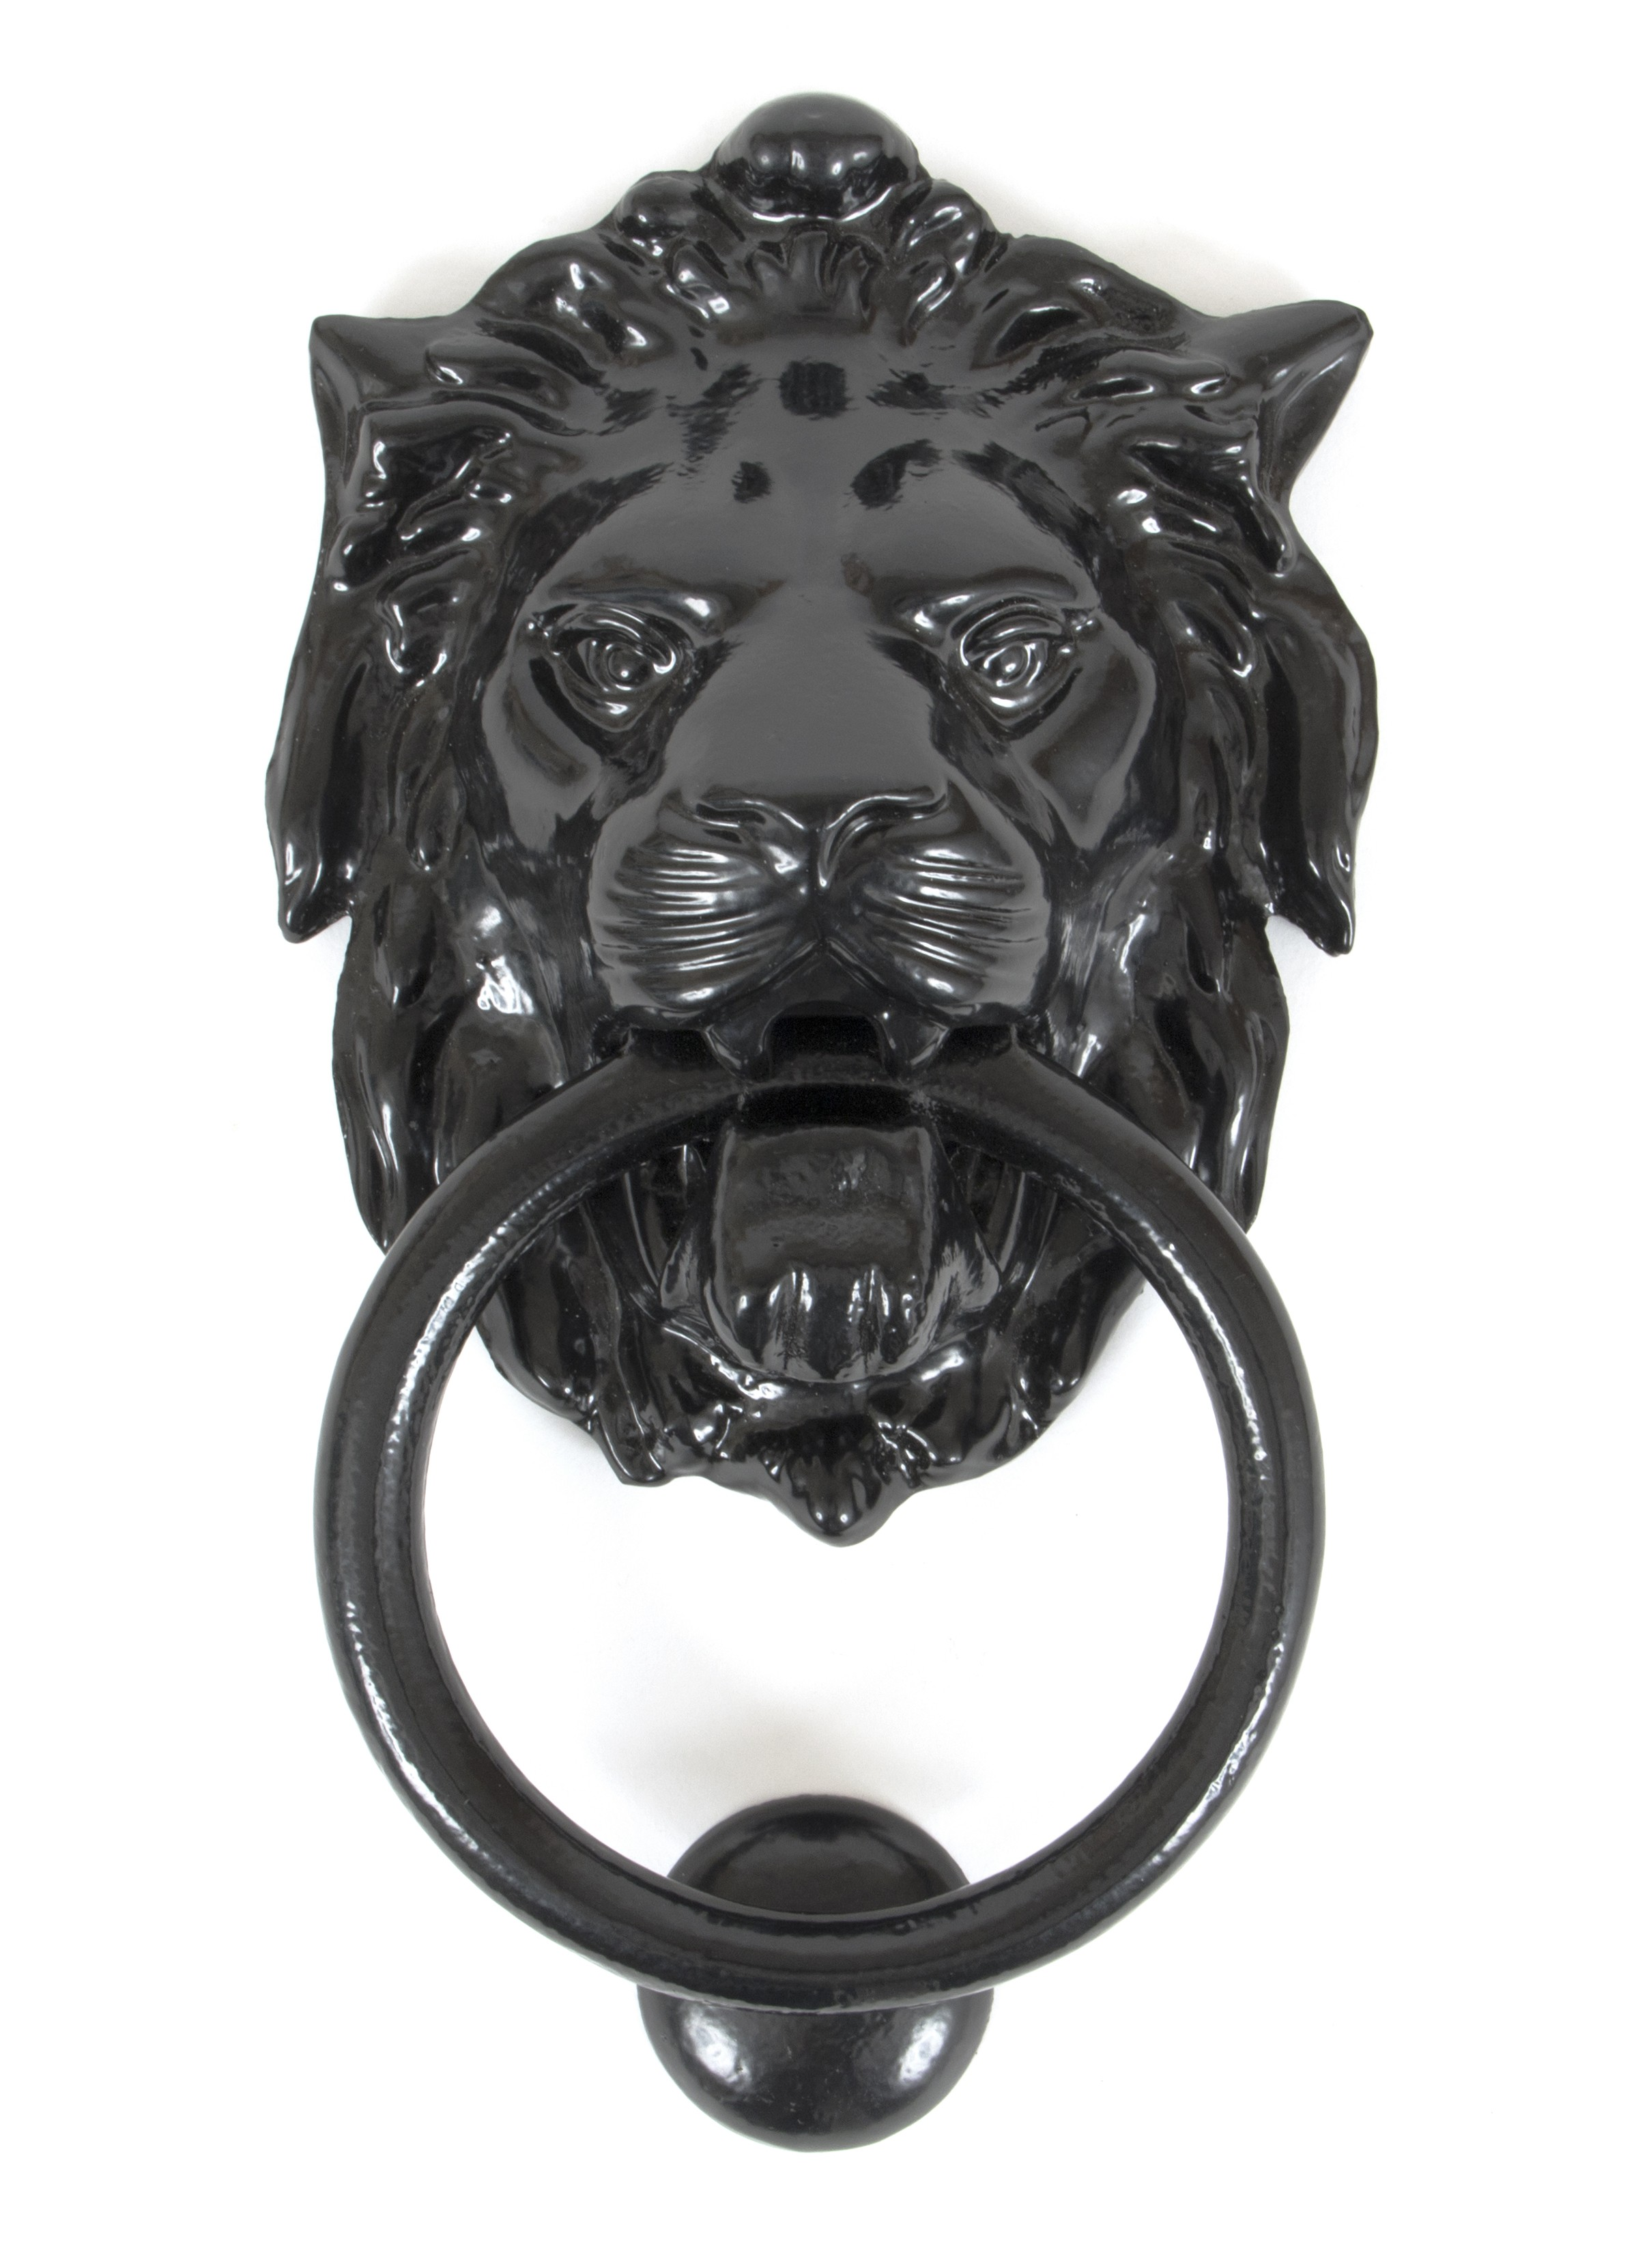 ANVIL - Lion's Head Door Knocker - Black